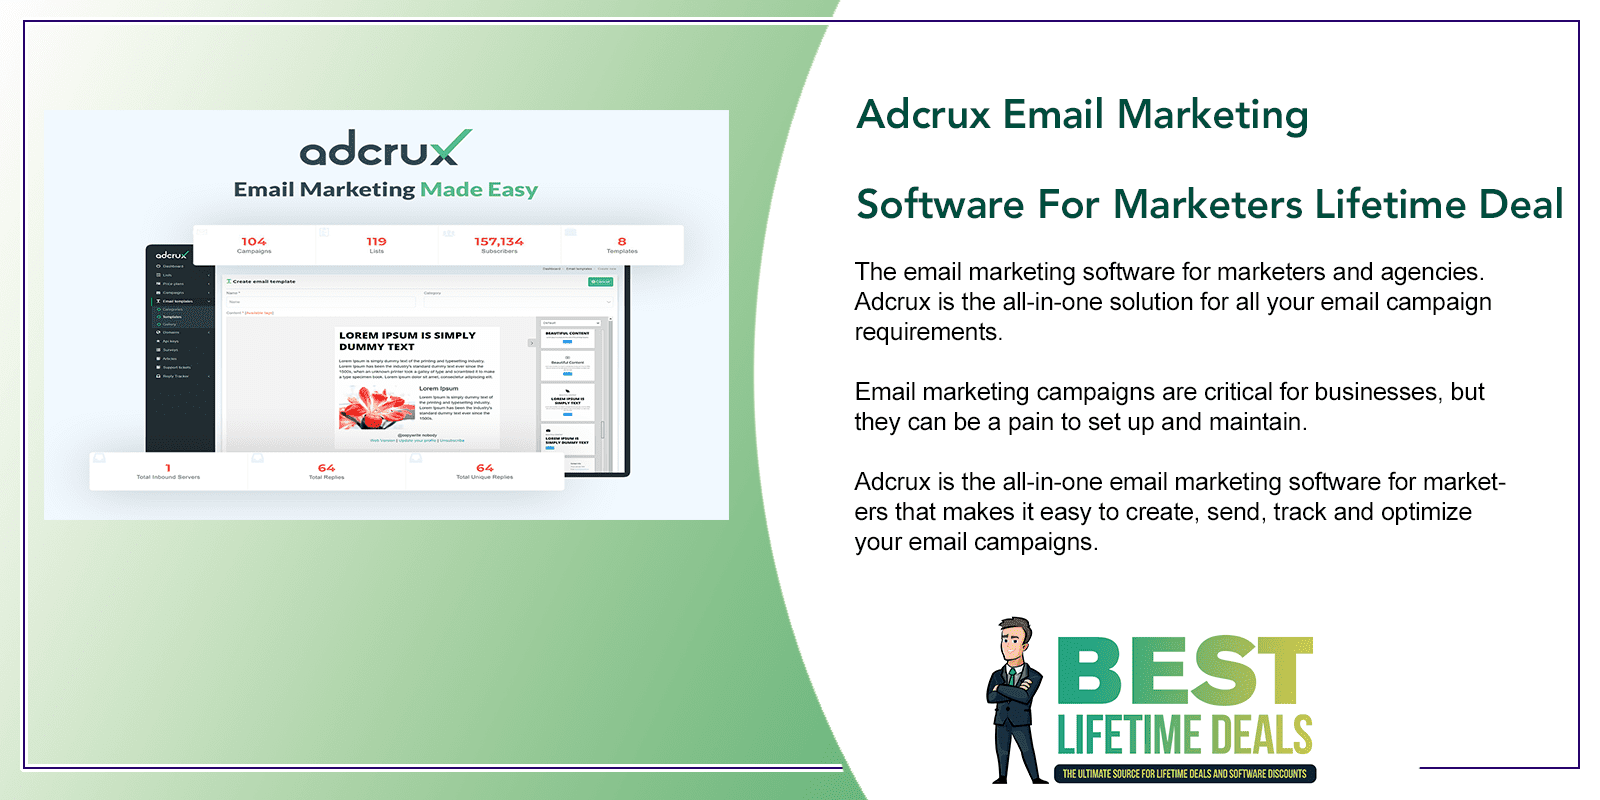 Adcrux Email Marketing Software For Marketers Featured Image